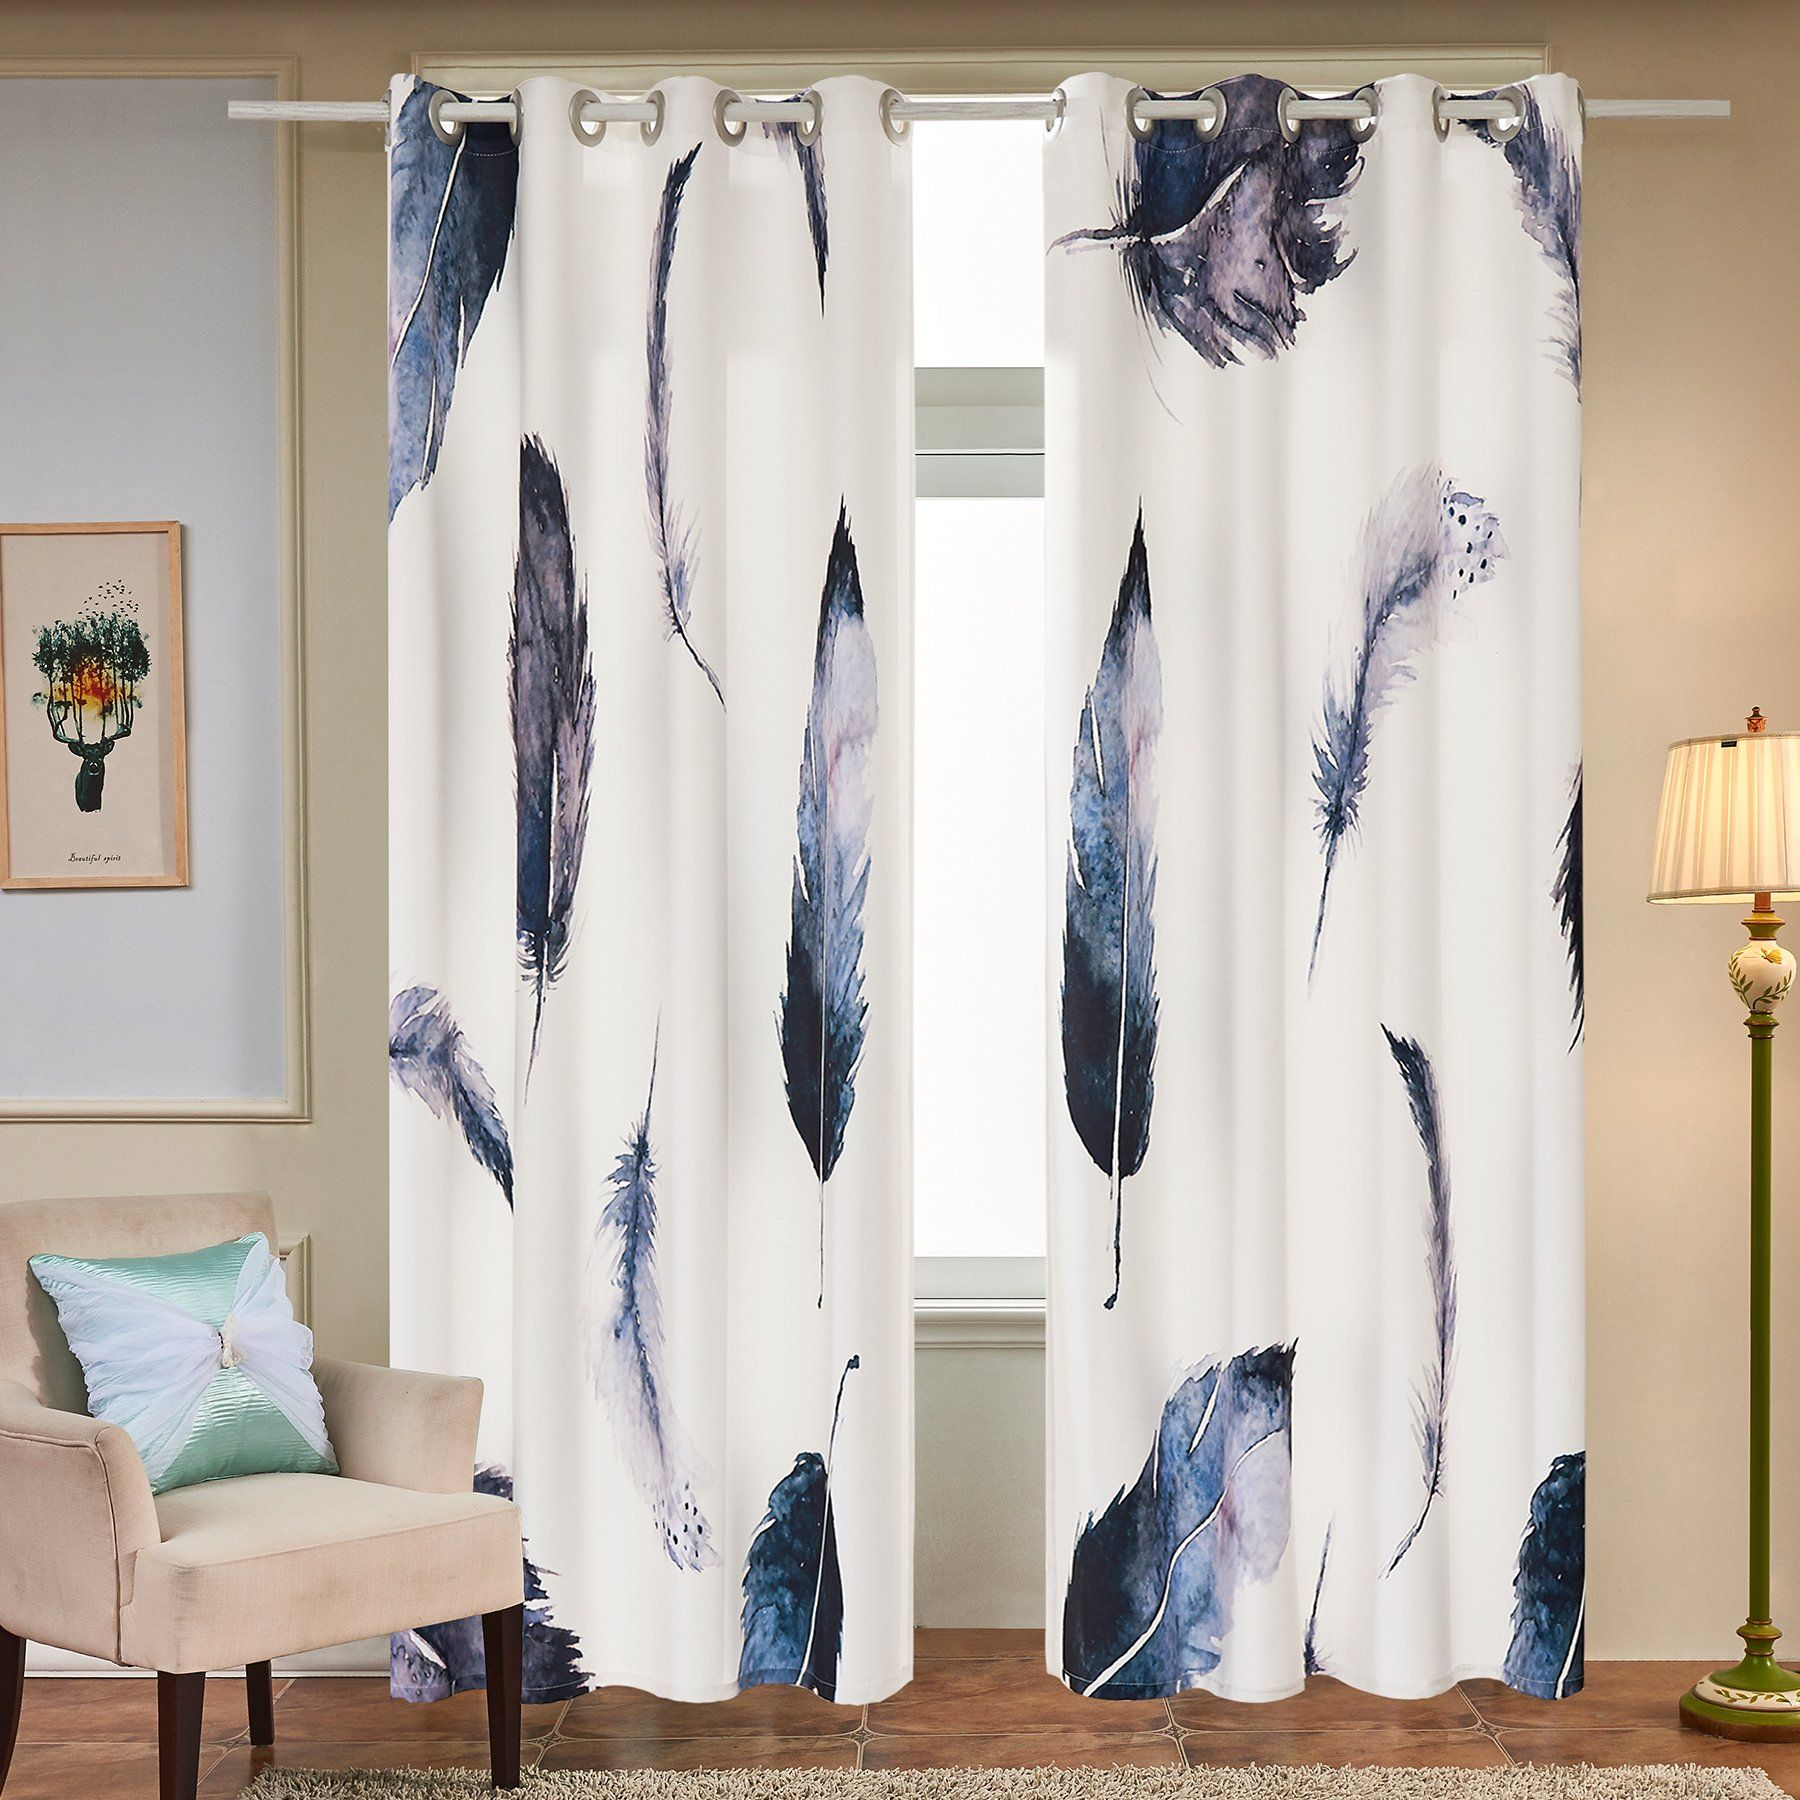 Fassbel 2 Panel Set Digital Printed Window Curtains For Bedroom Simple Dining Room Window Curtains Inspiration